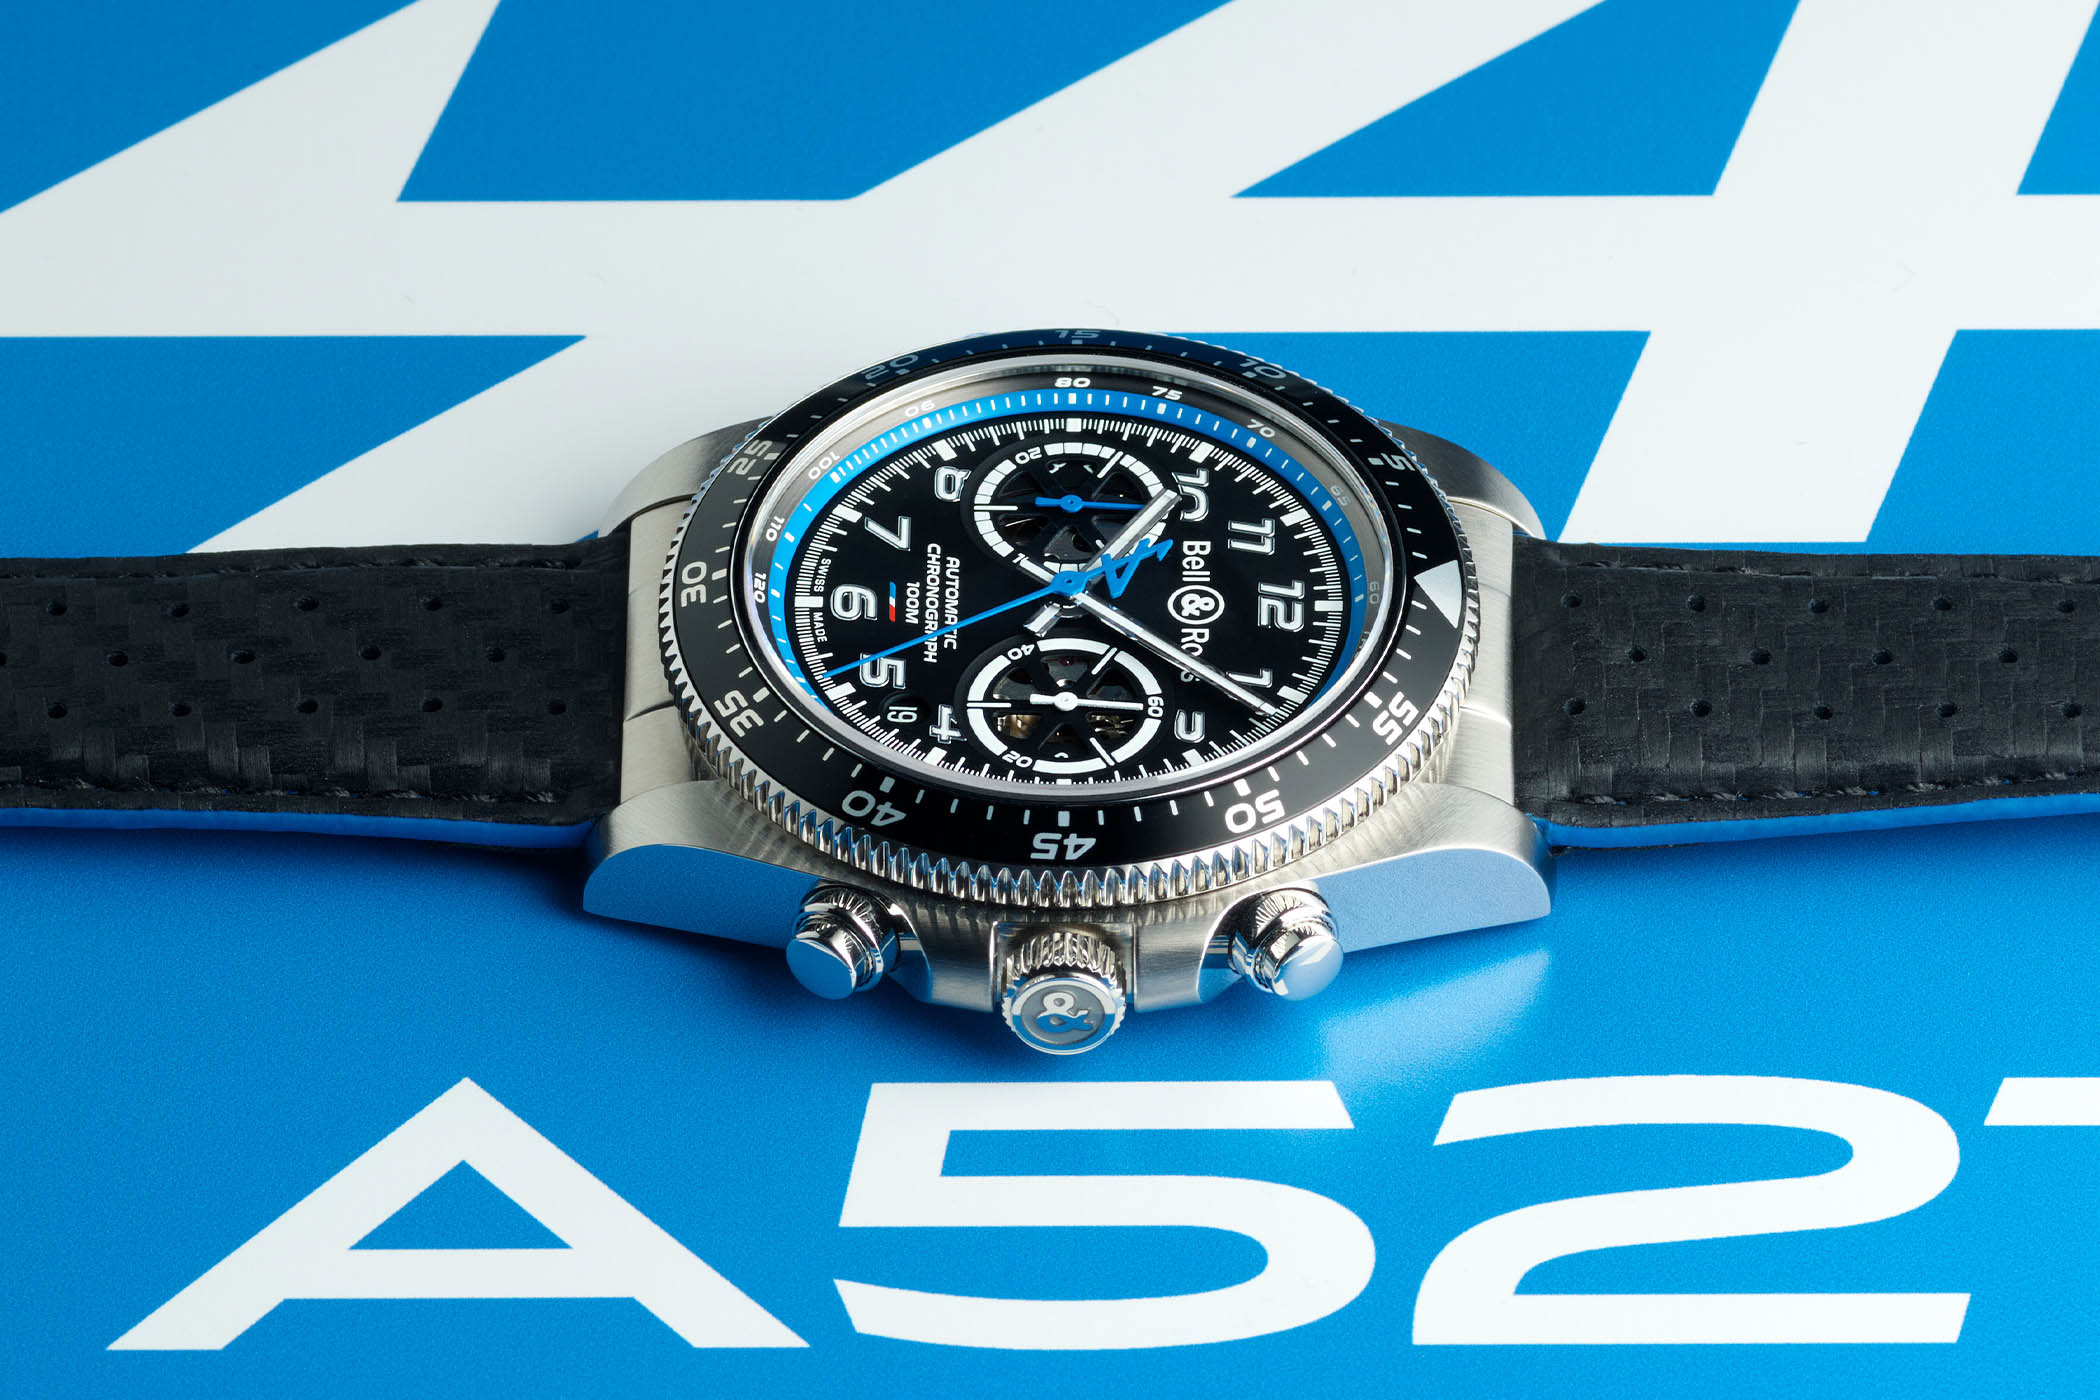 Bell & Ross Alpine F1 Team A521 Collection